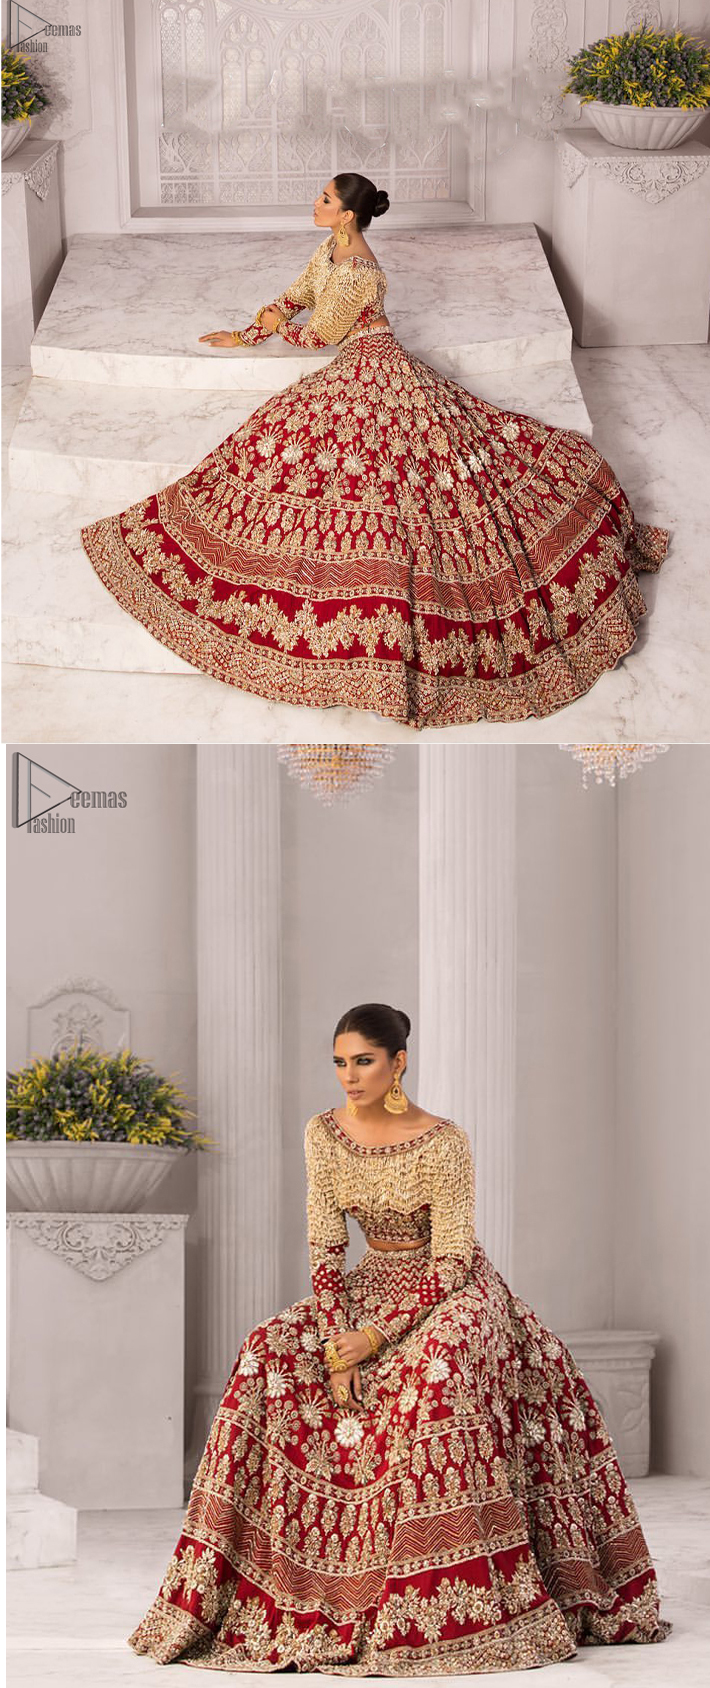 Discover classic red and fawn dresses for a traditional style, with delicate detailing and intricate accents for a subtle yet sophisticated look, including long-sleeves laden with zardozi work. The blouse is beautifully sculptured with floral embroidery, also adorned with cutwork, embellished with silver kora dabka, pearl and sequins work all over. Complement the look with a red lehenga emphasized with different sizes of floral motifs, geometric pattern and heavy embellished bottom with zardozi work is absolutely breathtaking. The outfit is to pair up with a red dupatta with hand embellished border and floral motifs all over.